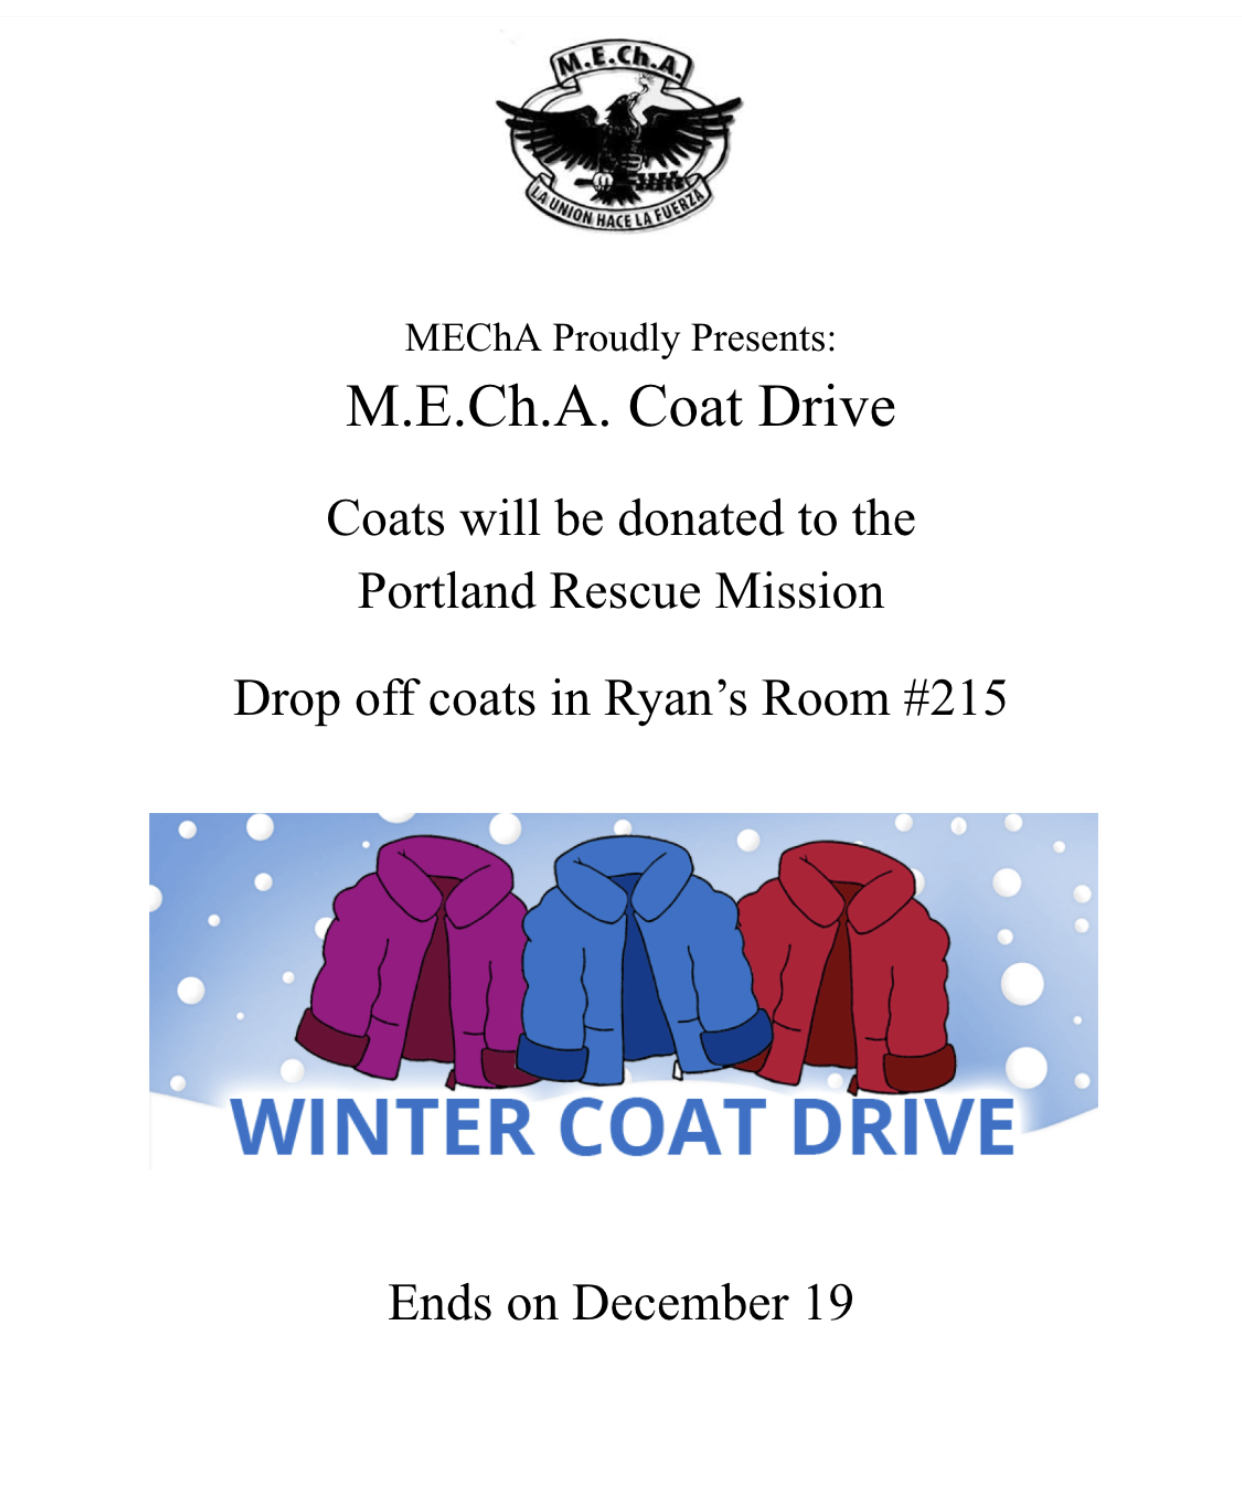 One of the flyers posted around the school with information about the Winter Coat Drive. The coats collected will be donated to those in need.